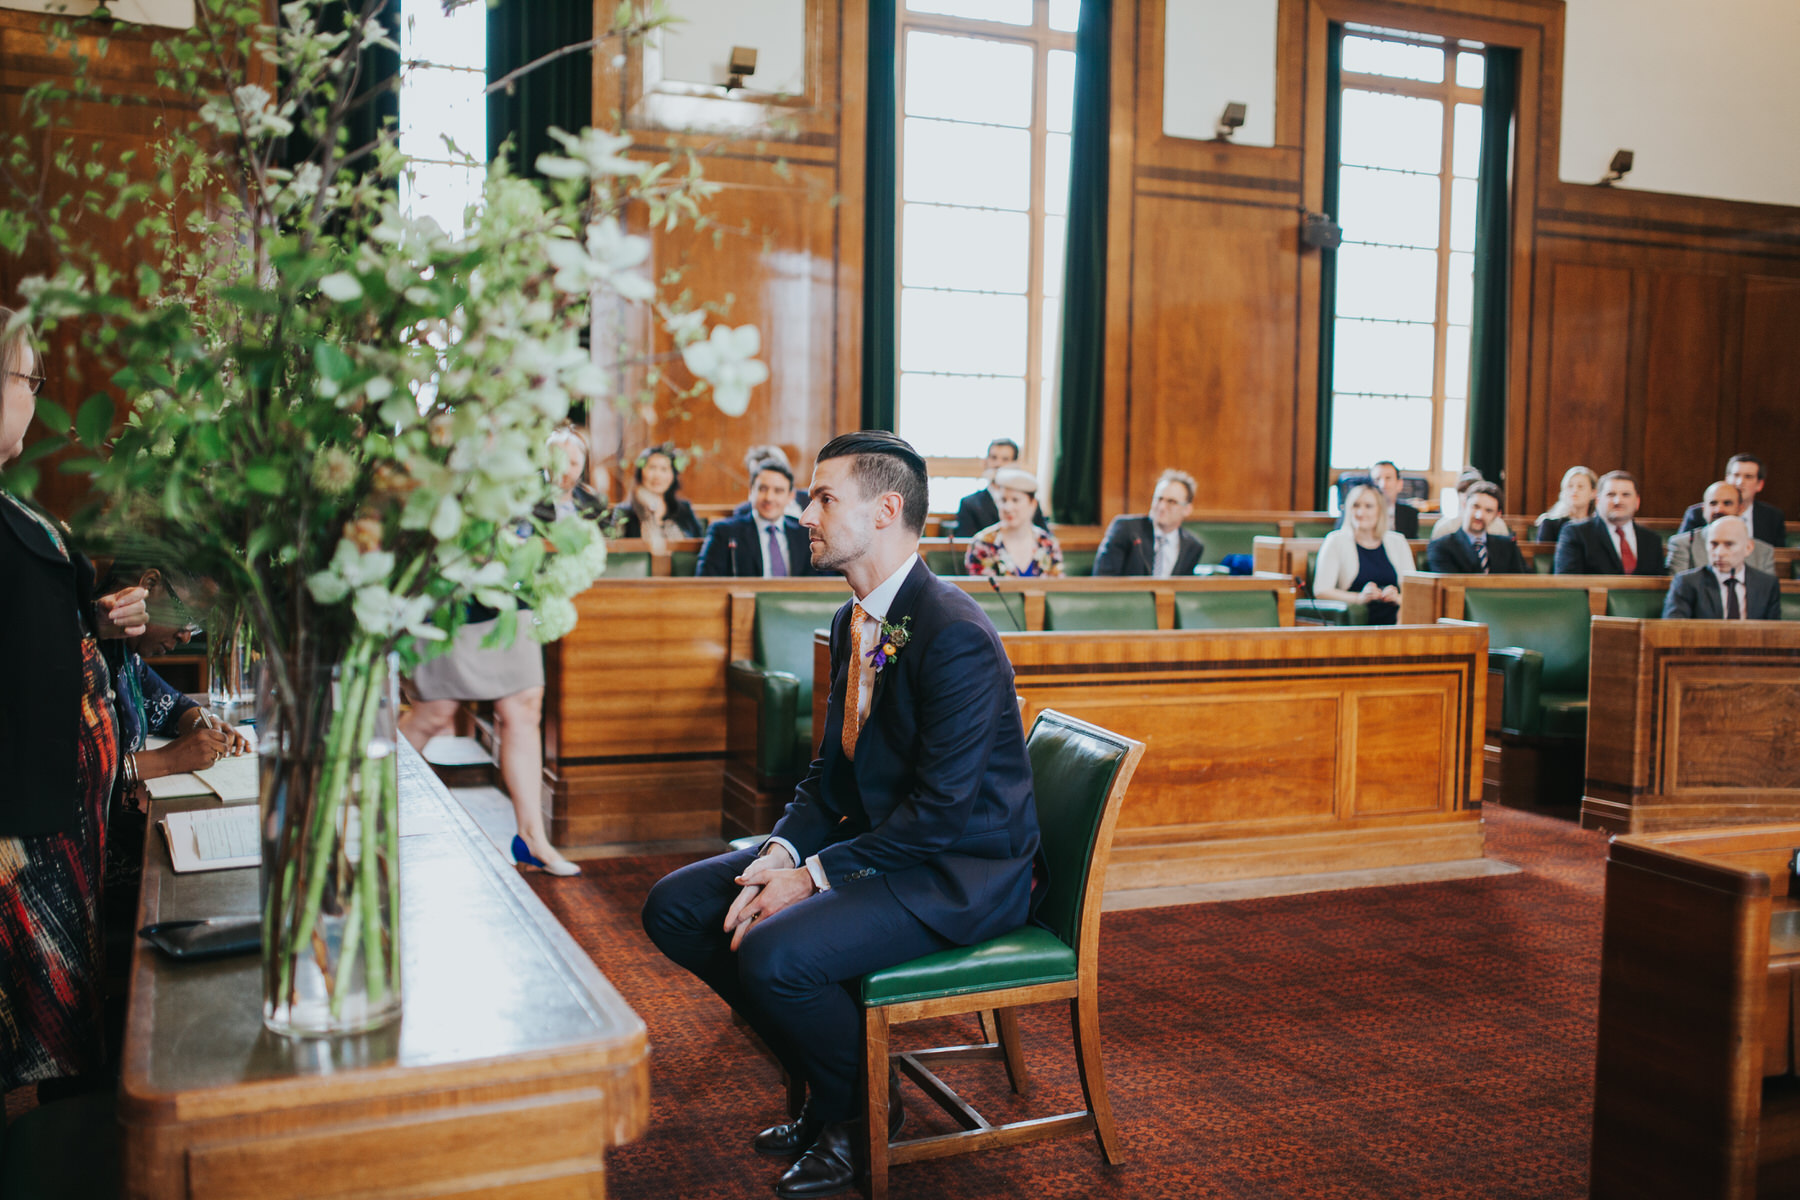 MS-Londesborough-Pub-wedding-Hackney-alternative-photographer-98-groom-waiting-bride-London-town-hall-council-chamber.jpg